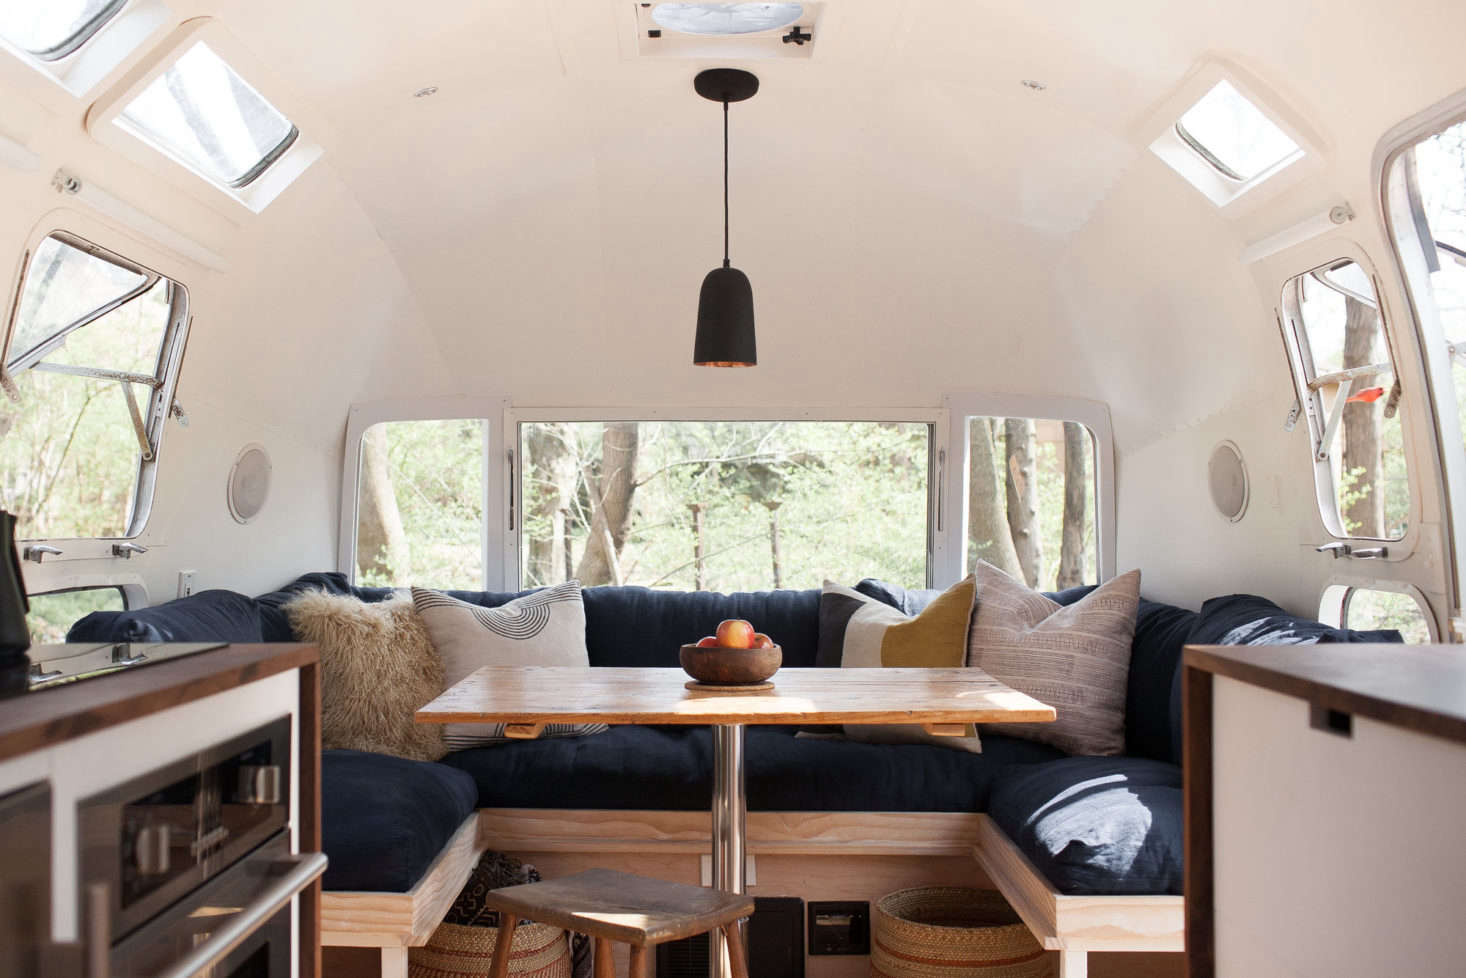 Superbe The Dining Area Of Modern Caravanu0027s Vintage Airstream Features A Custom  Table Made From Salvaged Boards